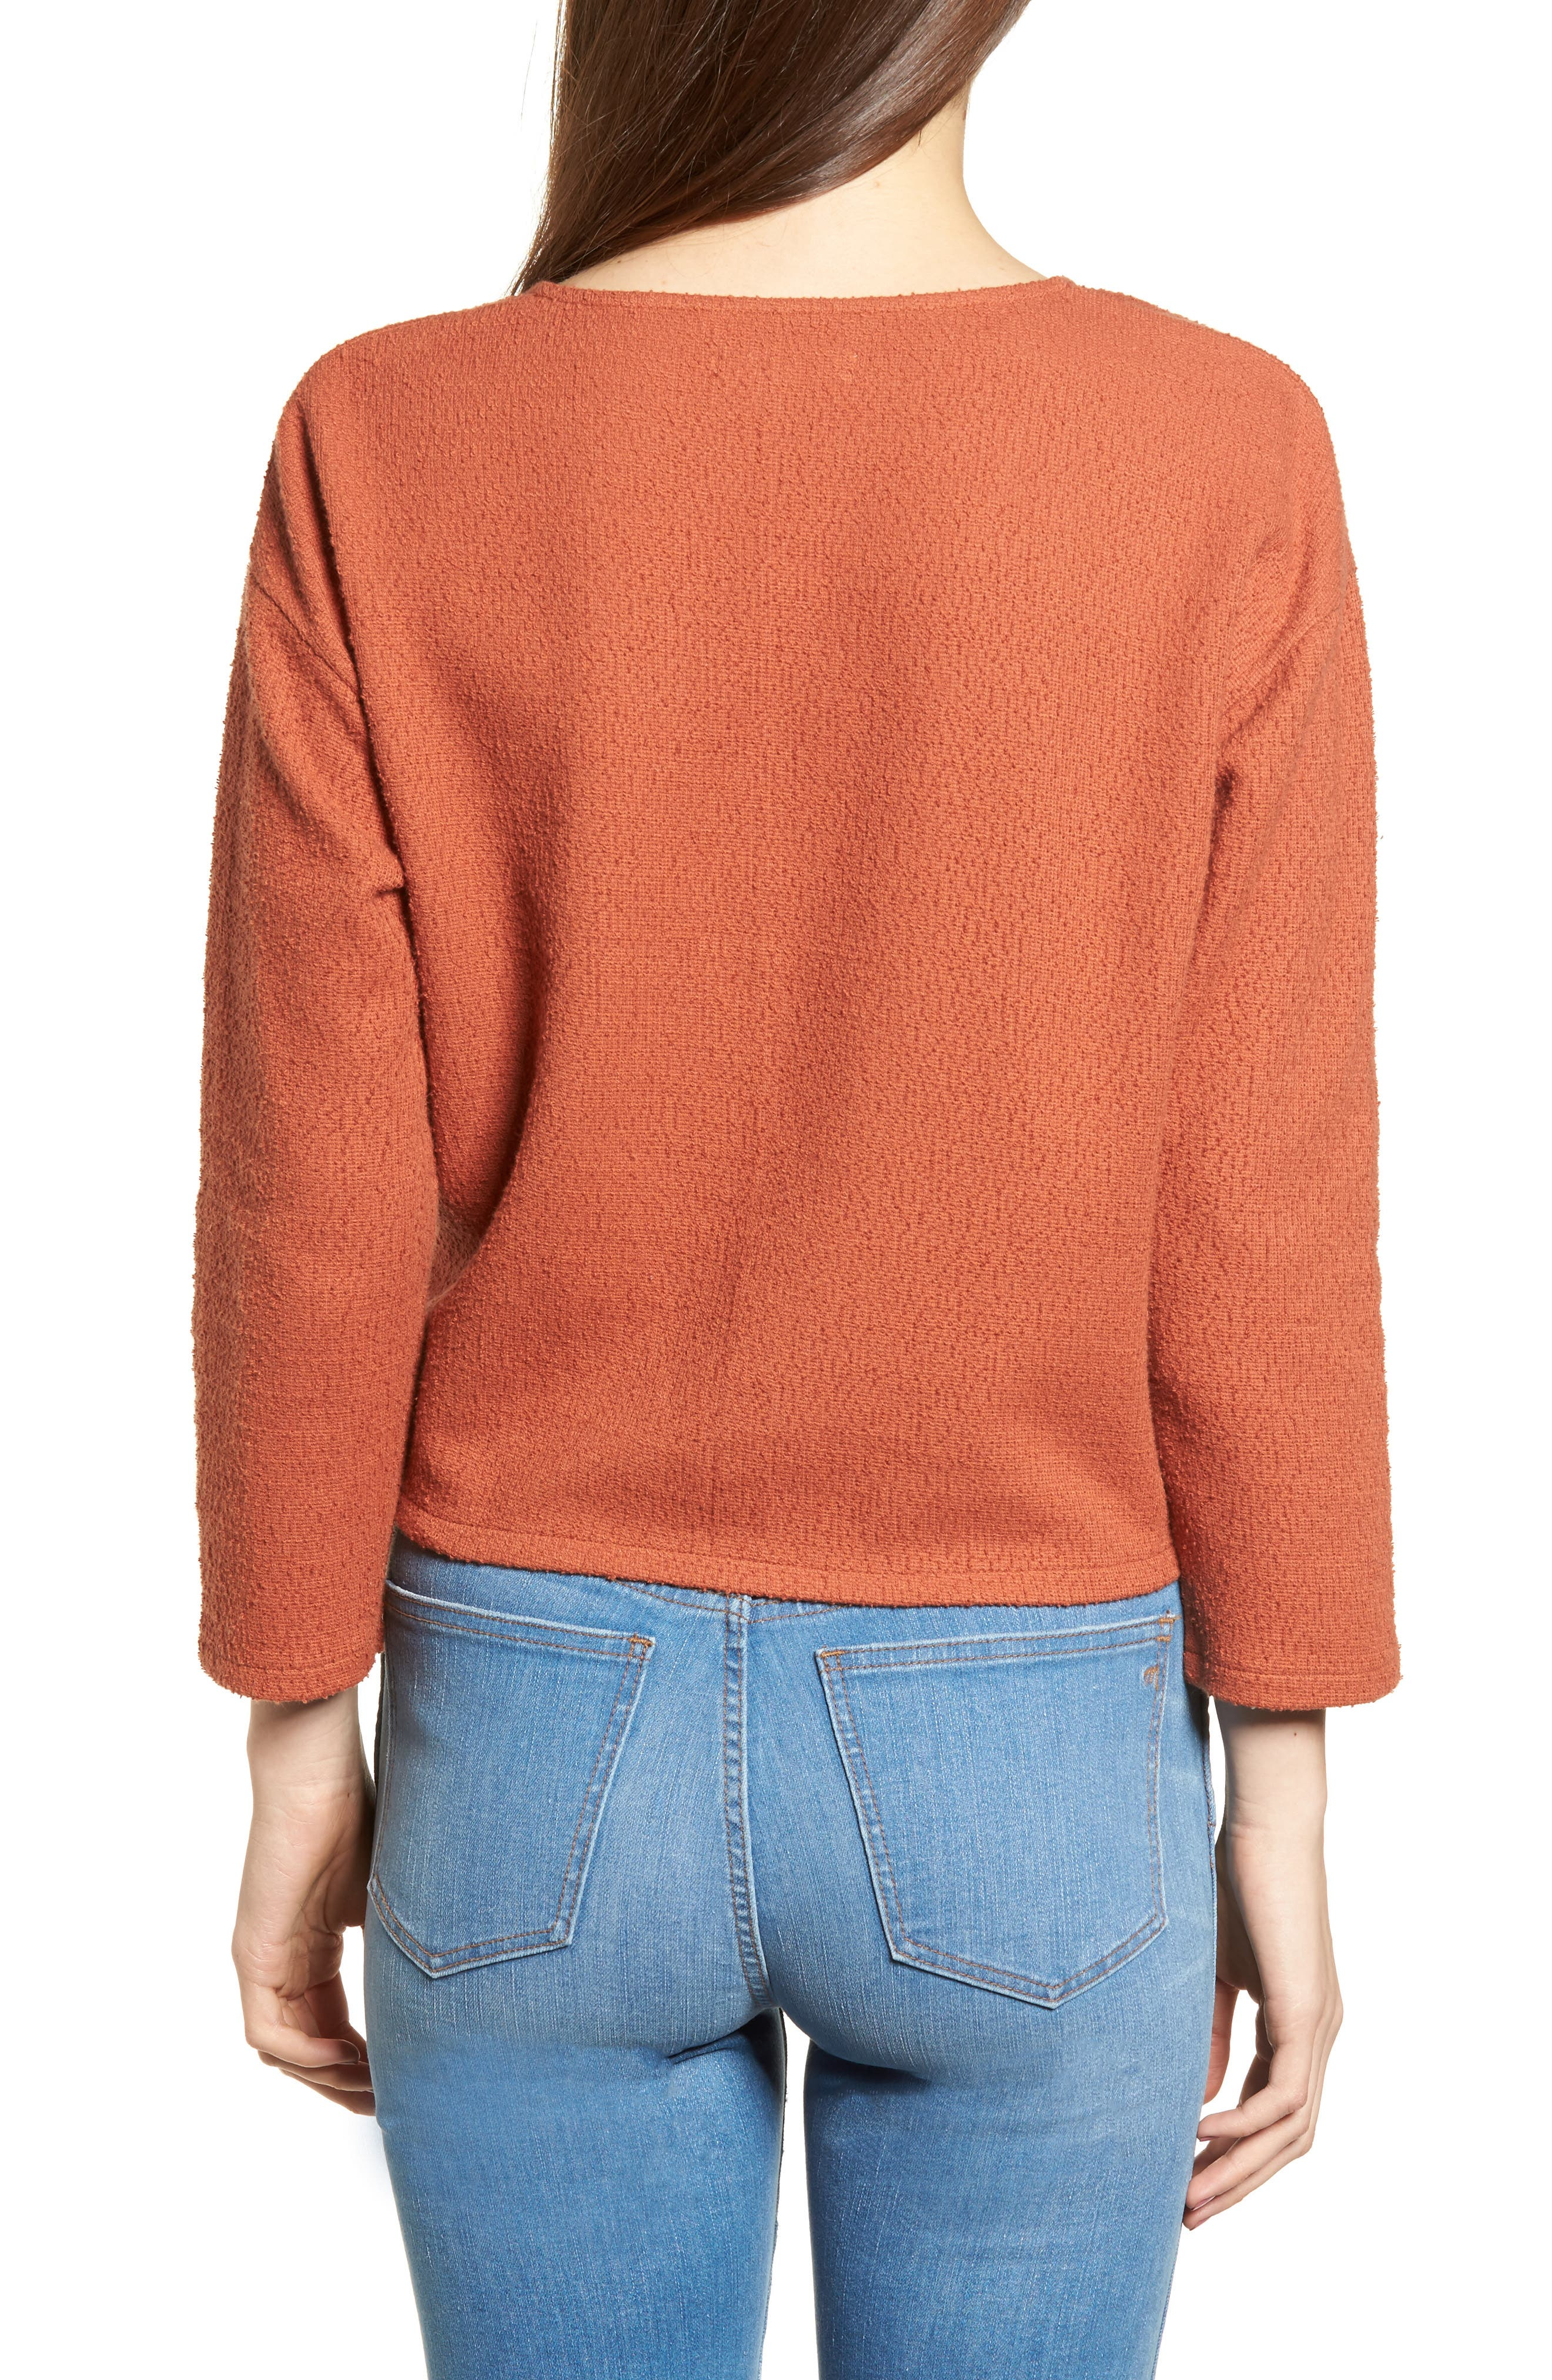 Alternate Image 2  - Madewell Textured Tie Front Top